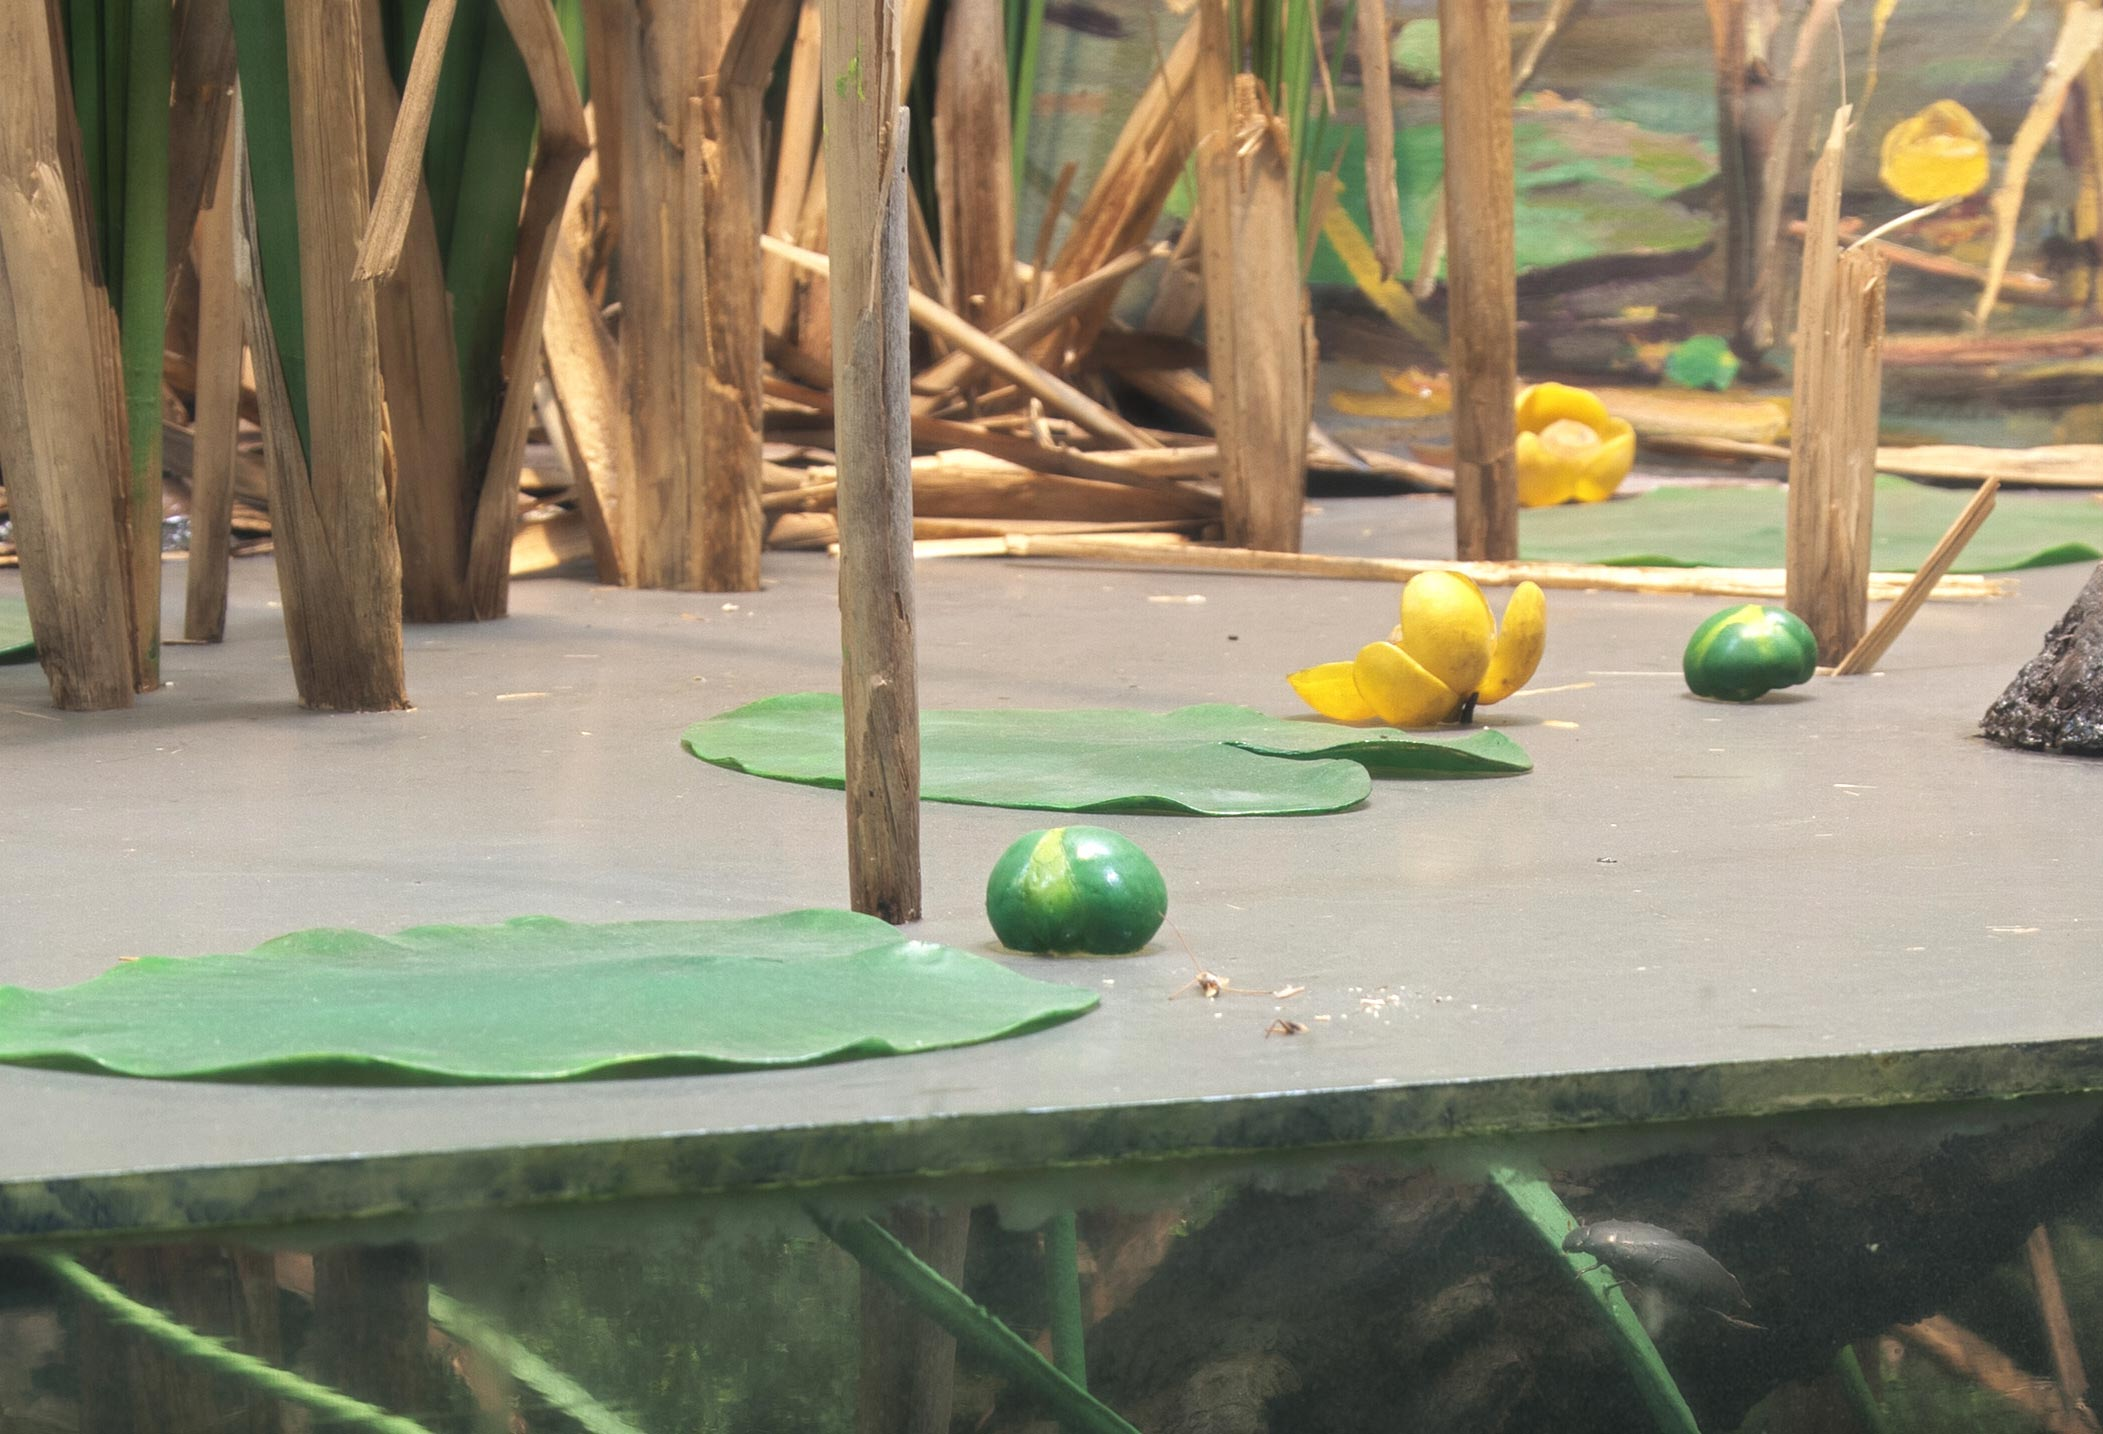 Section of a diorama showing yellow lily pads on the surface of a lake.